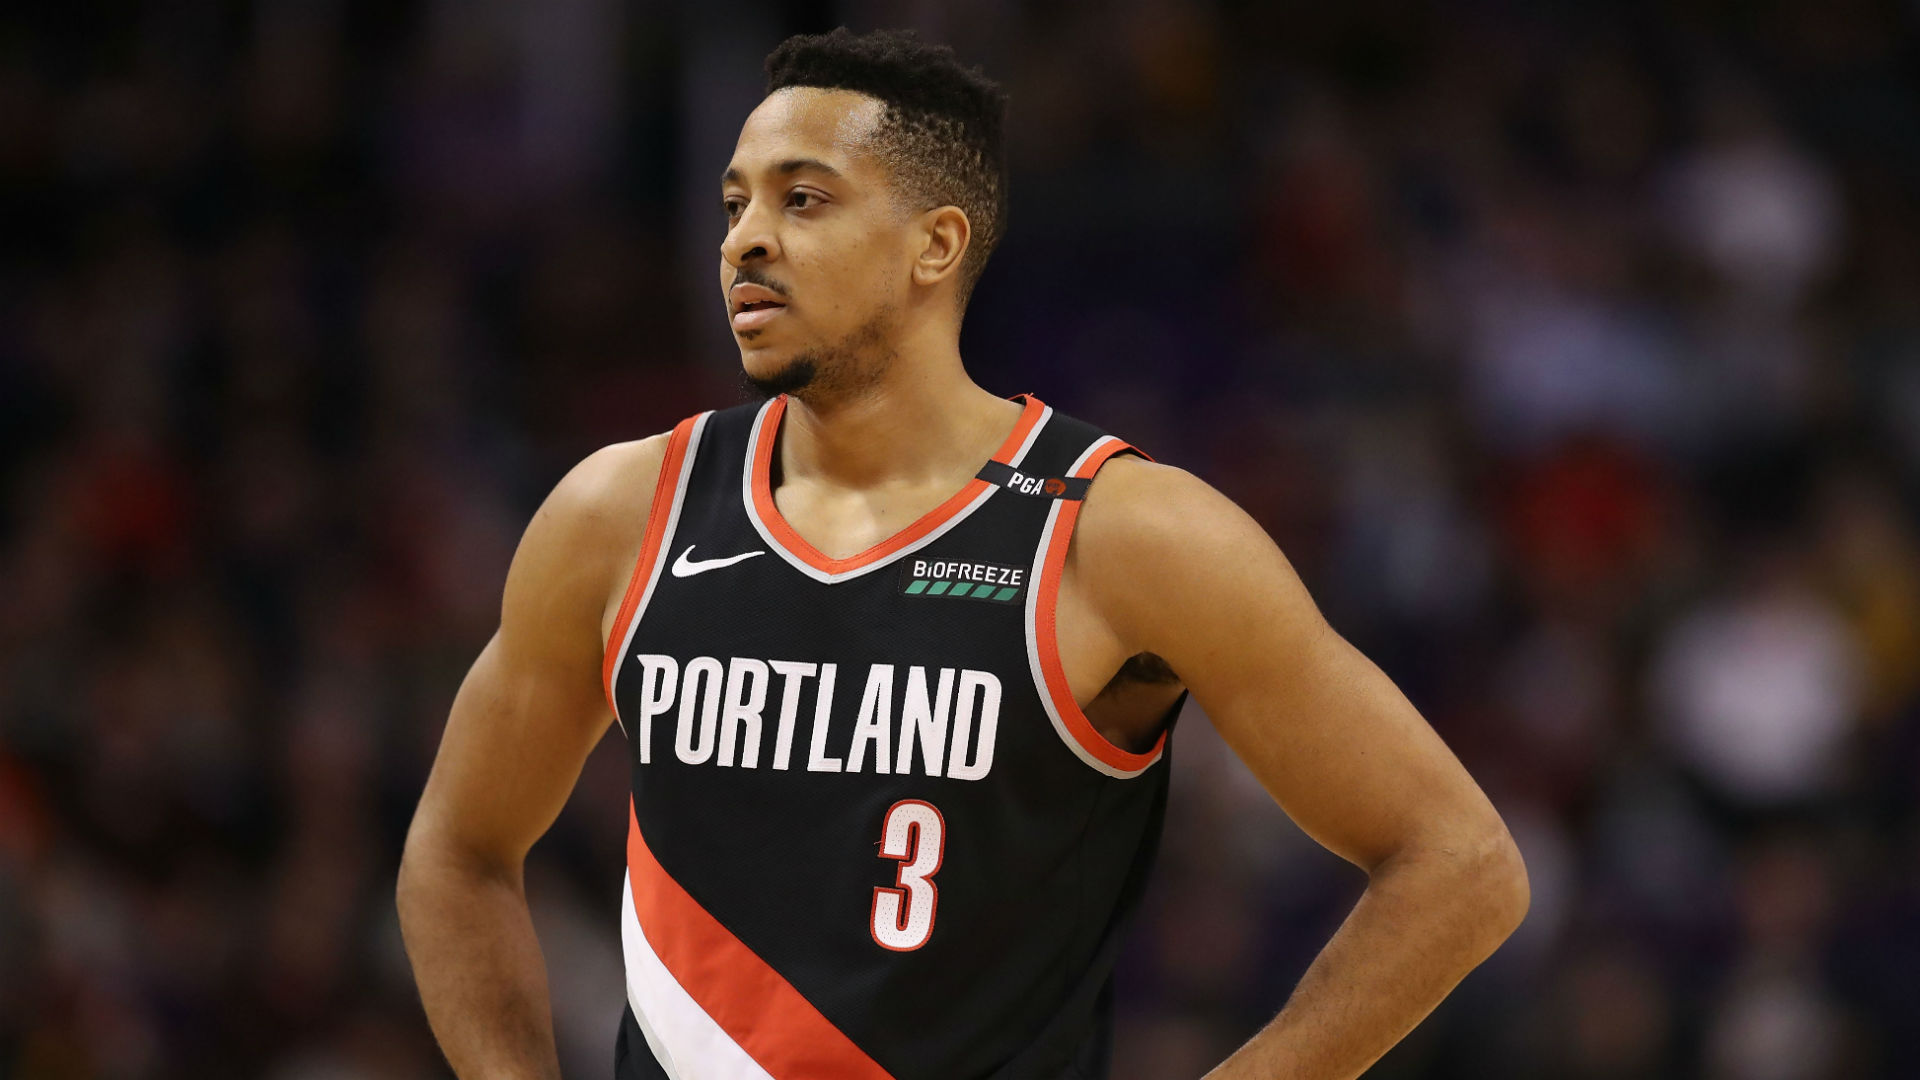 CJ McCollum injury update: Trail Blazers G (knee) to miss 4-game road trip